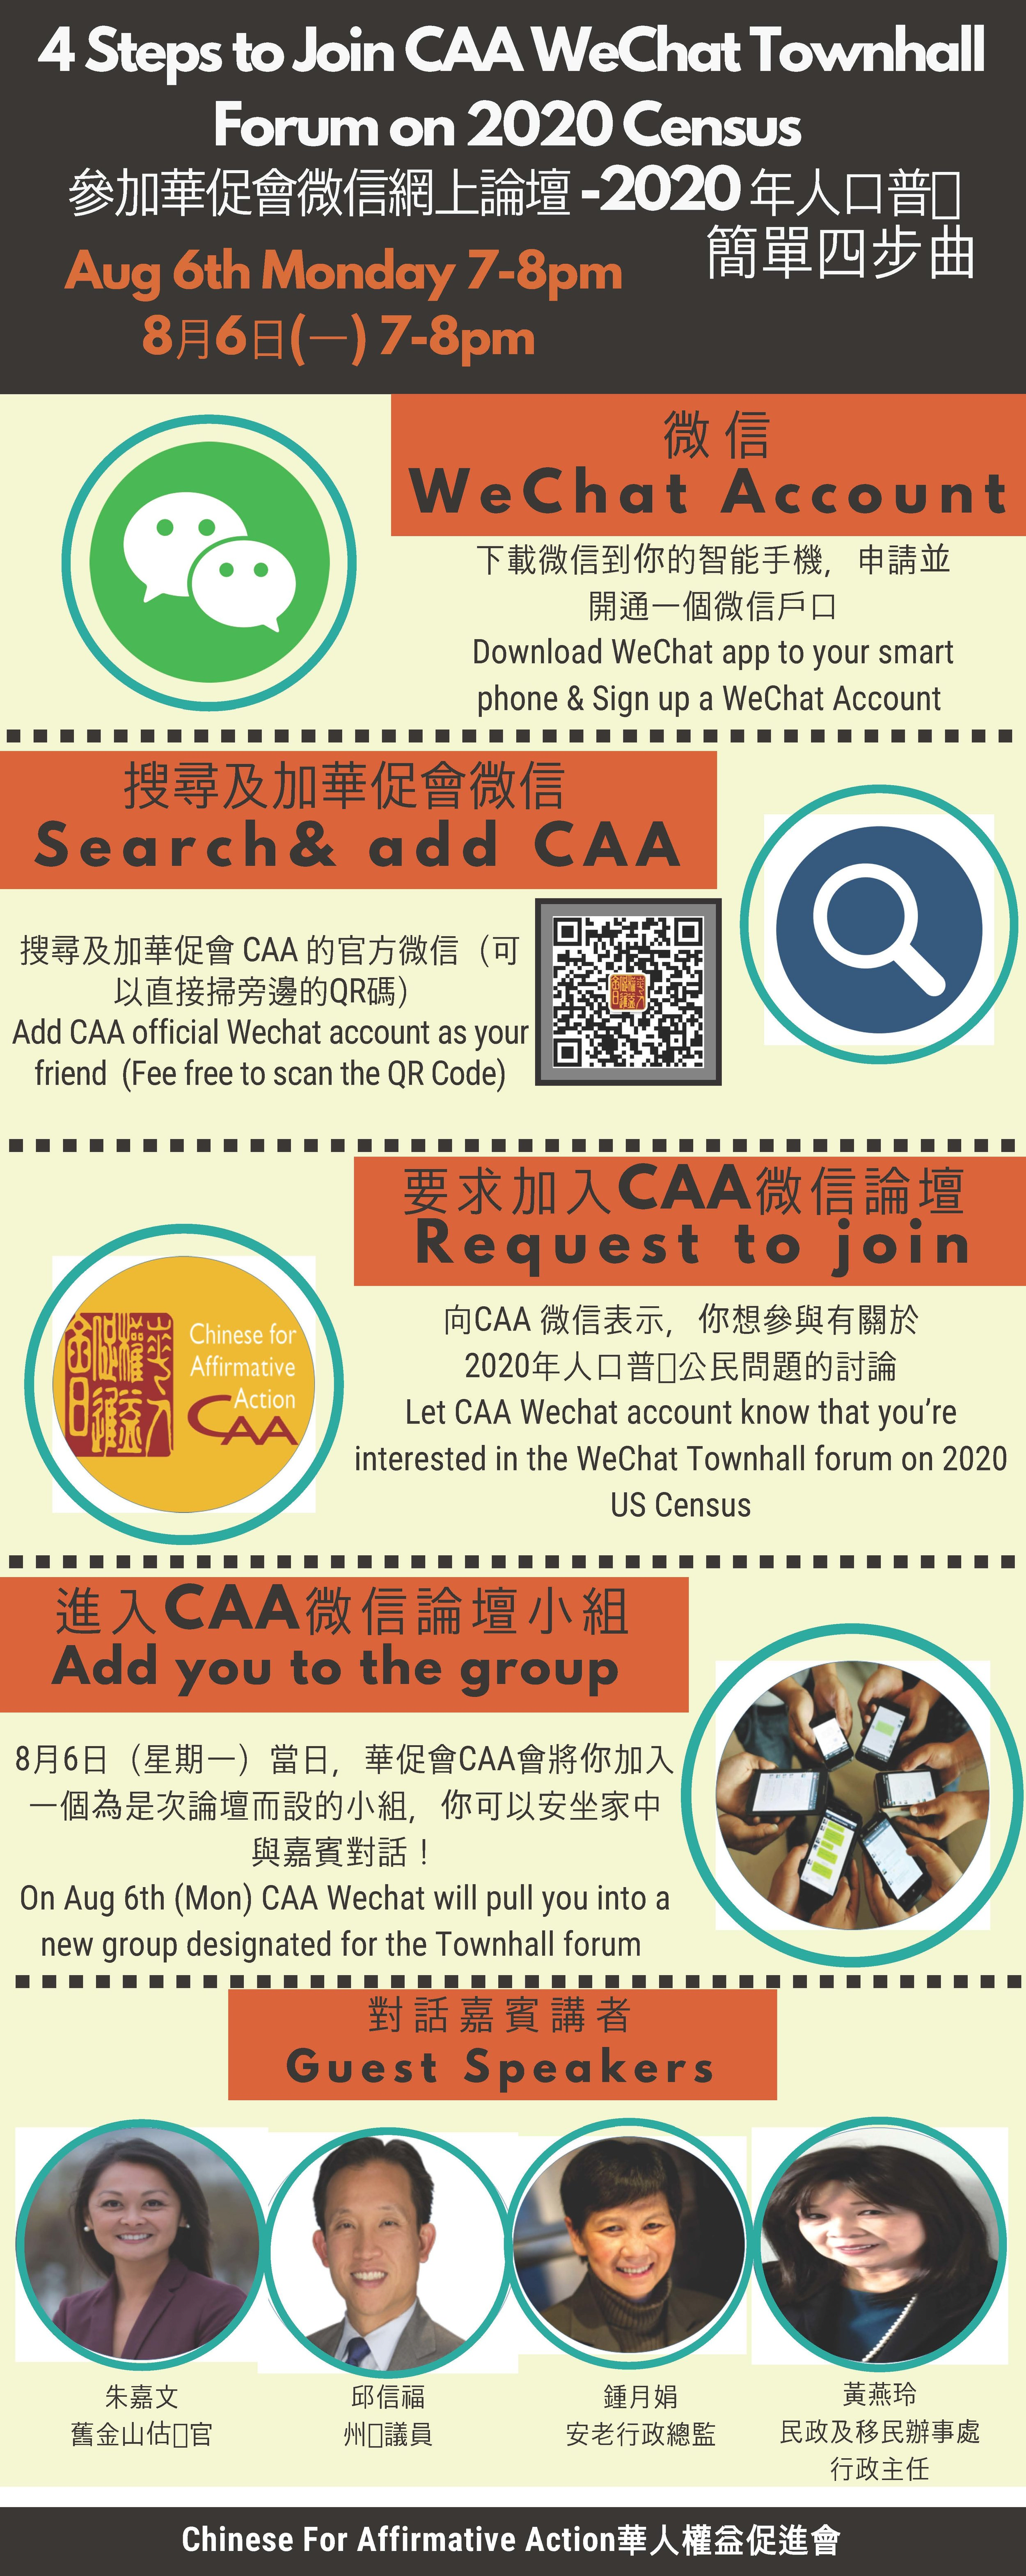 CAA WeChat Townhall Meeting Flyer_modified.jpg